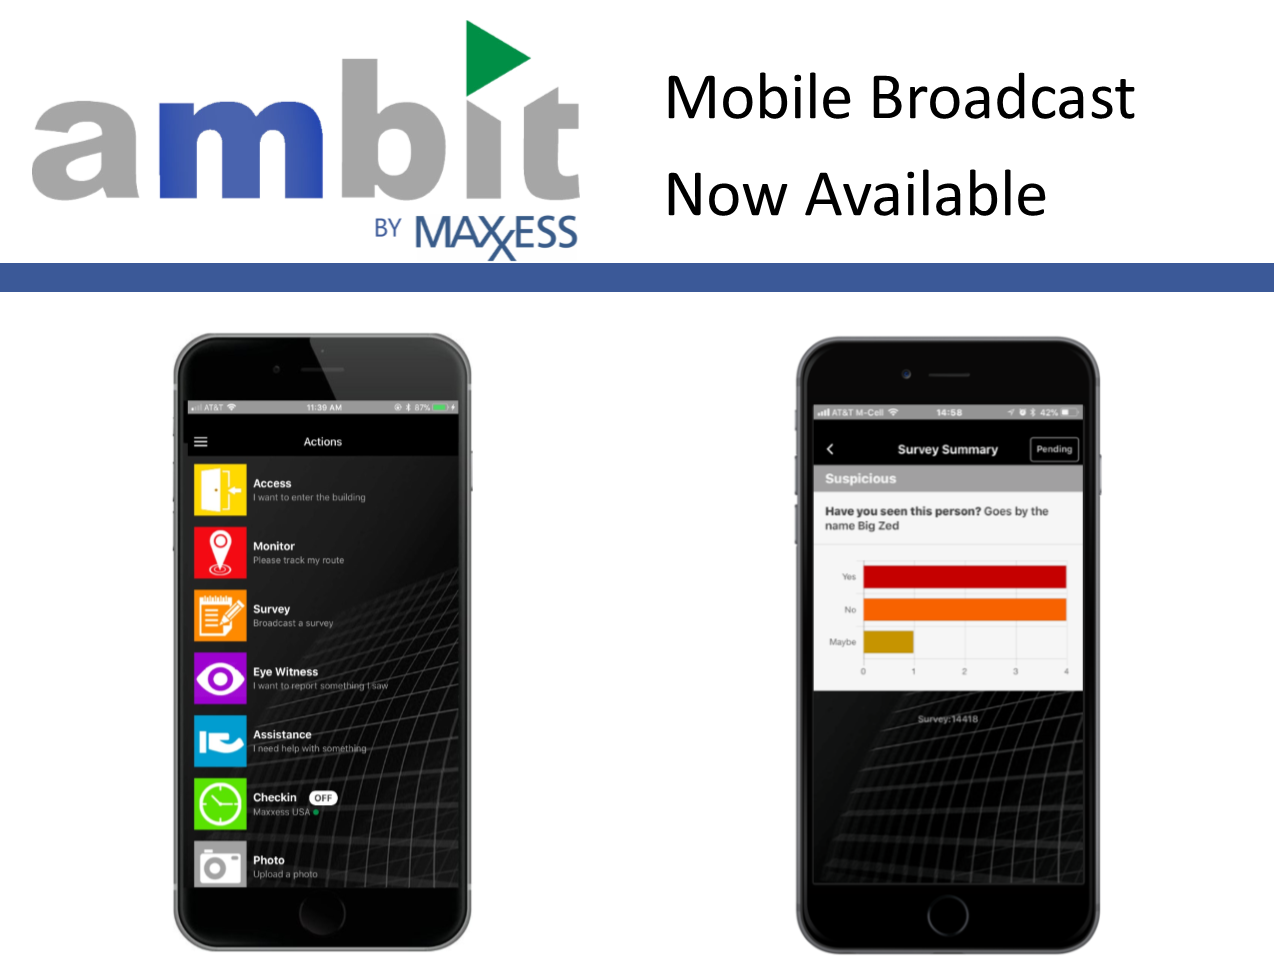 Maxxess Ambit users can now broadcast from their smartphones